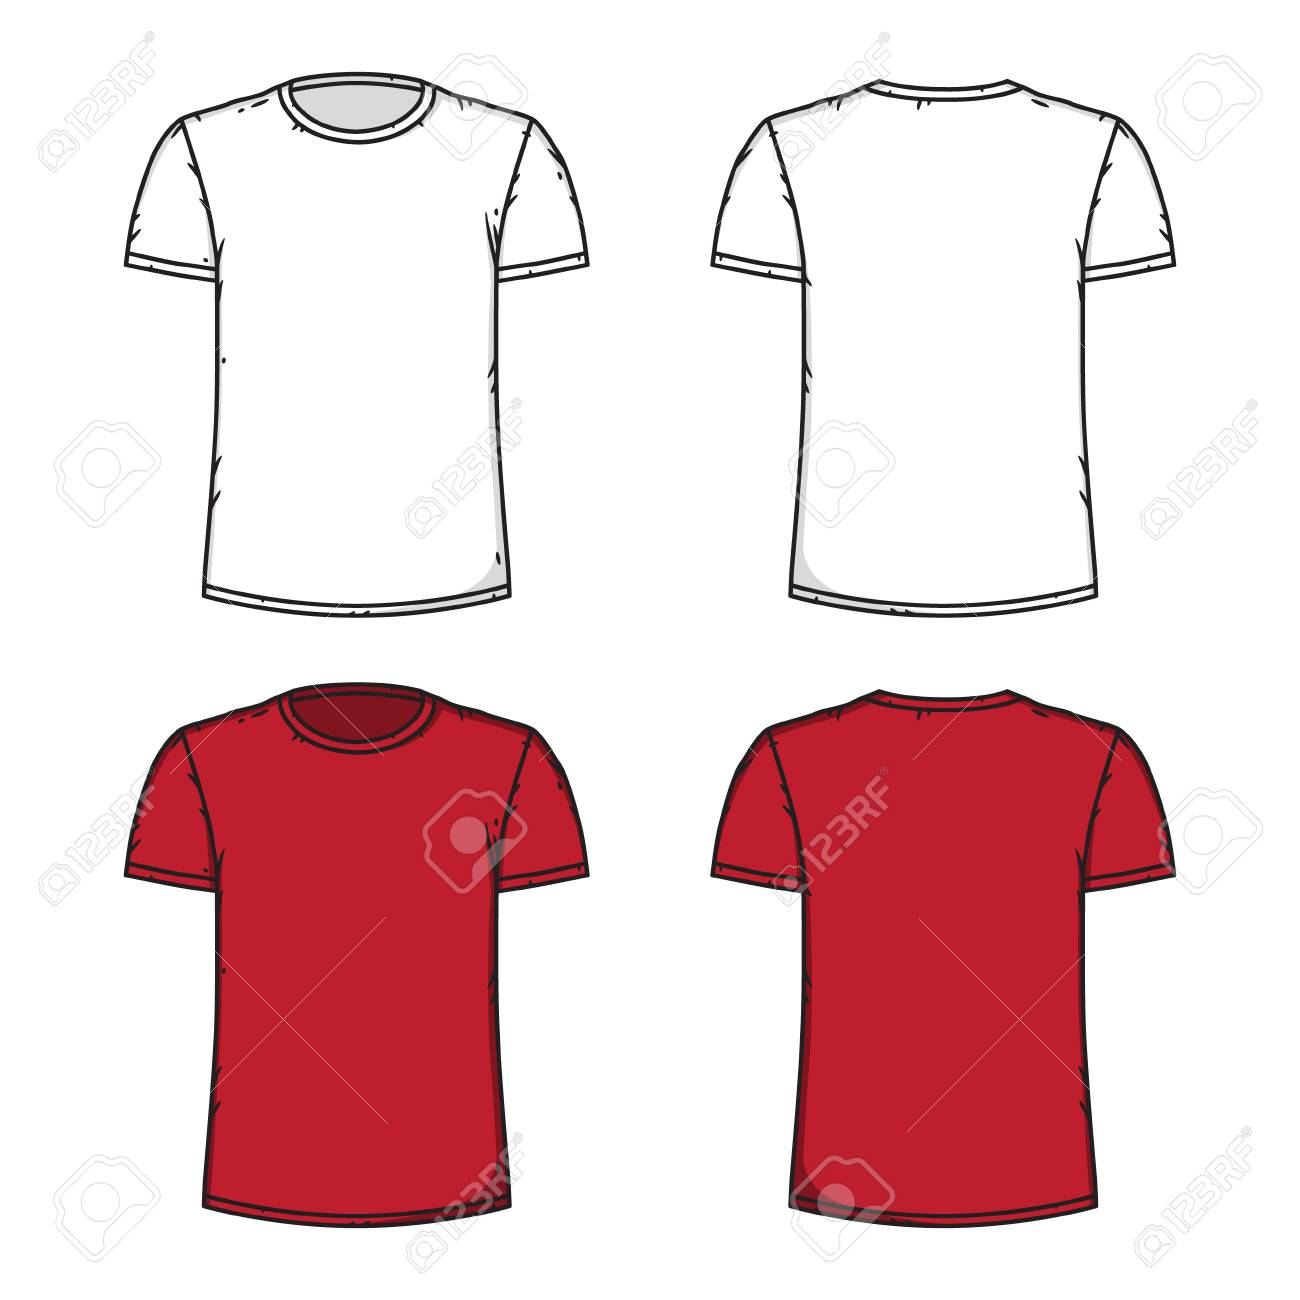 Blank White And Red T Shirt Template Front And Back Royalty Free